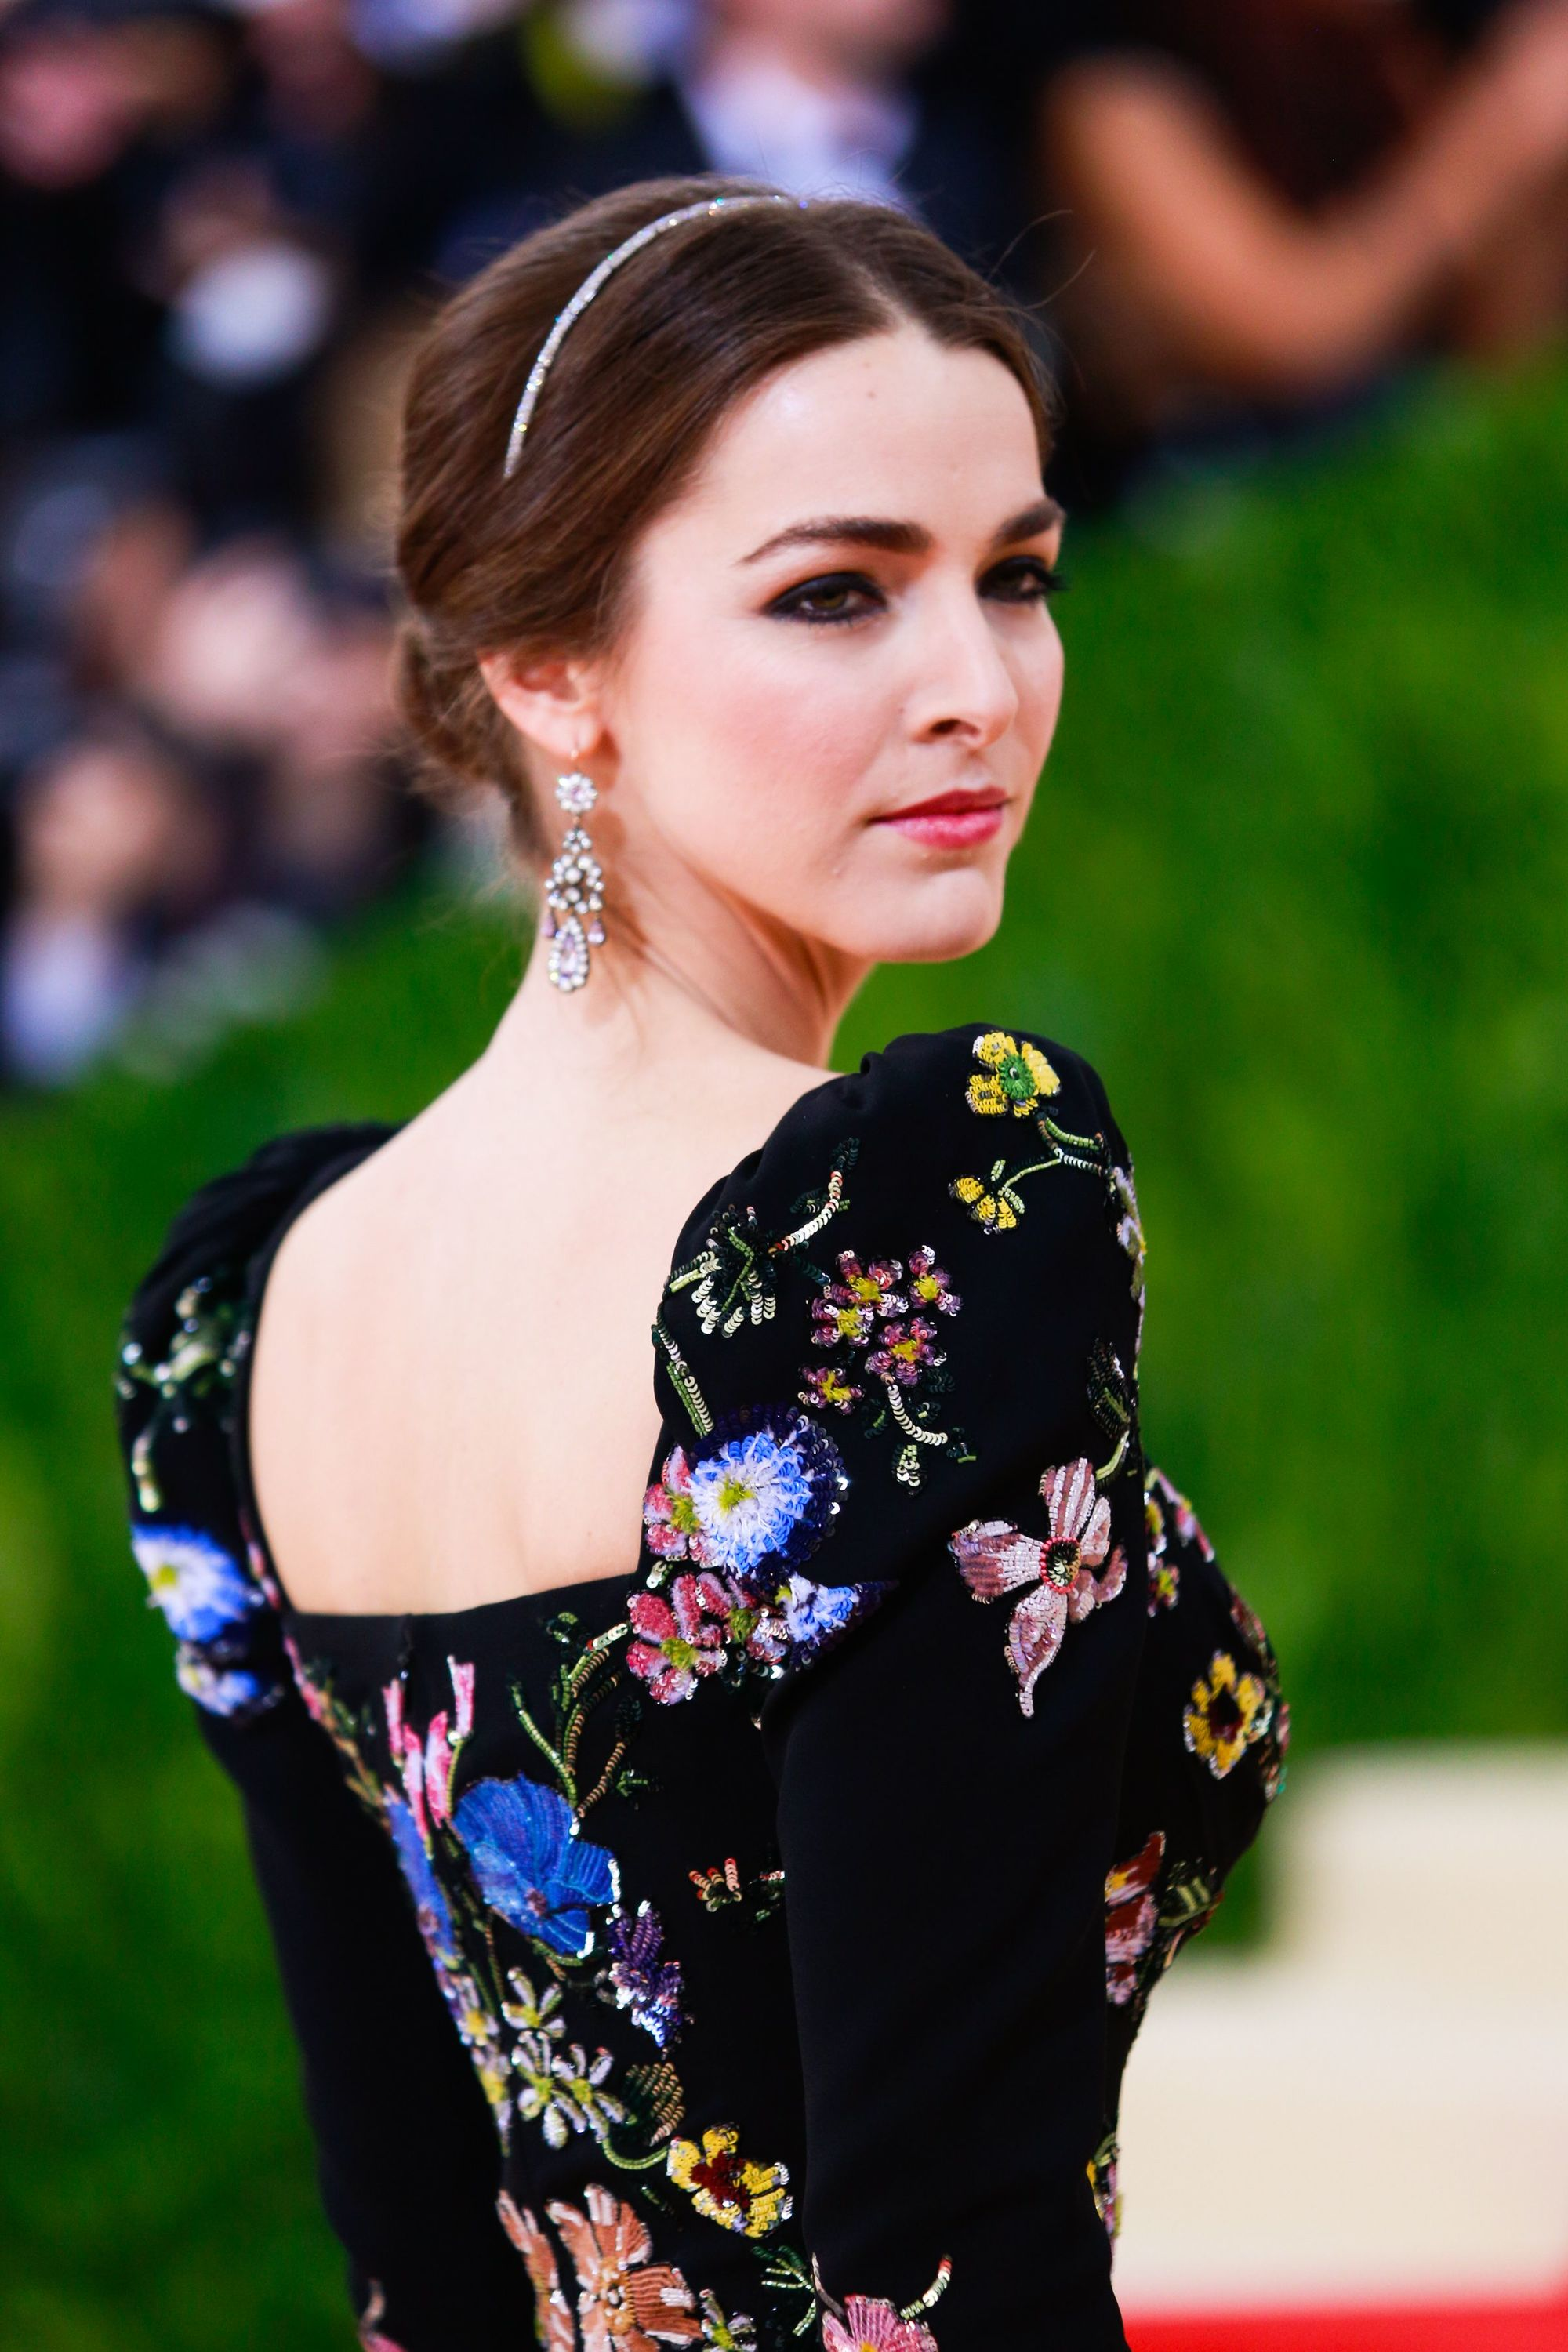 Bee Shaffer on the red carpet at MET Gala with her brown her styled in a chic updo with minimal headband.